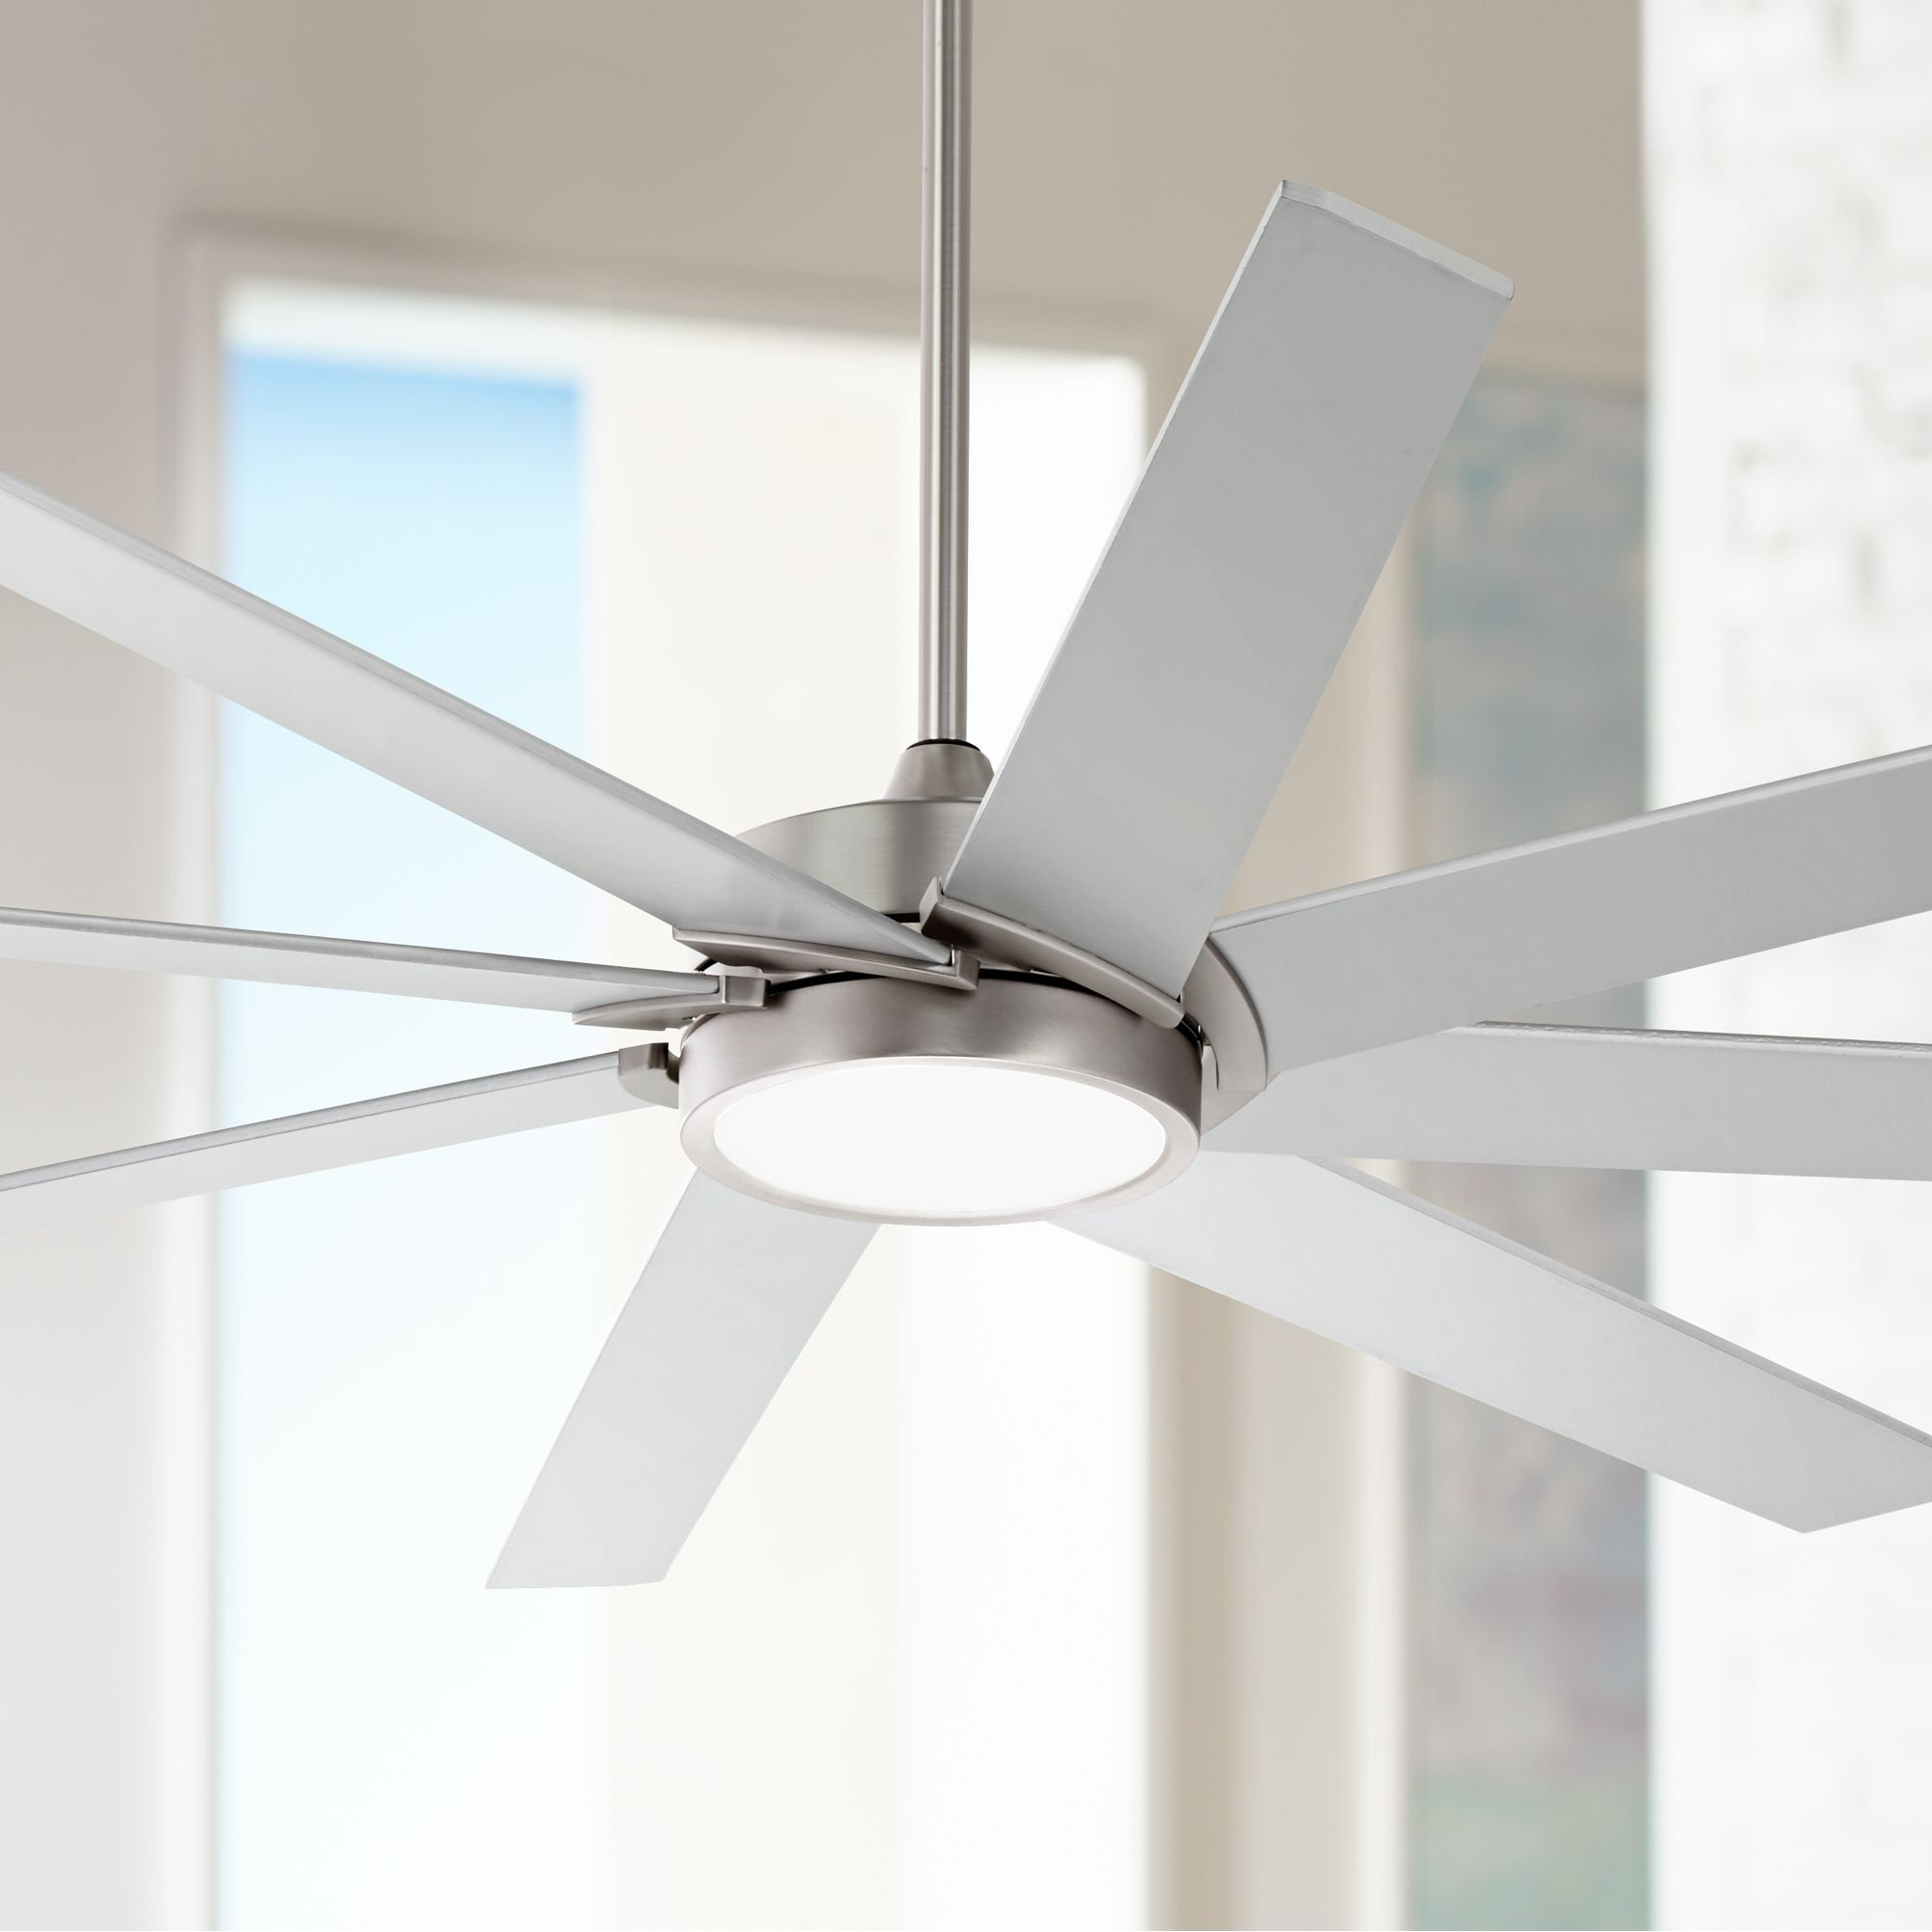 """65"""" Possini Euro Design Modern Ceiling Fan with Light LED Dimmable Remote Control Brushed Steel for Living Room Kitchen Bedroom"""